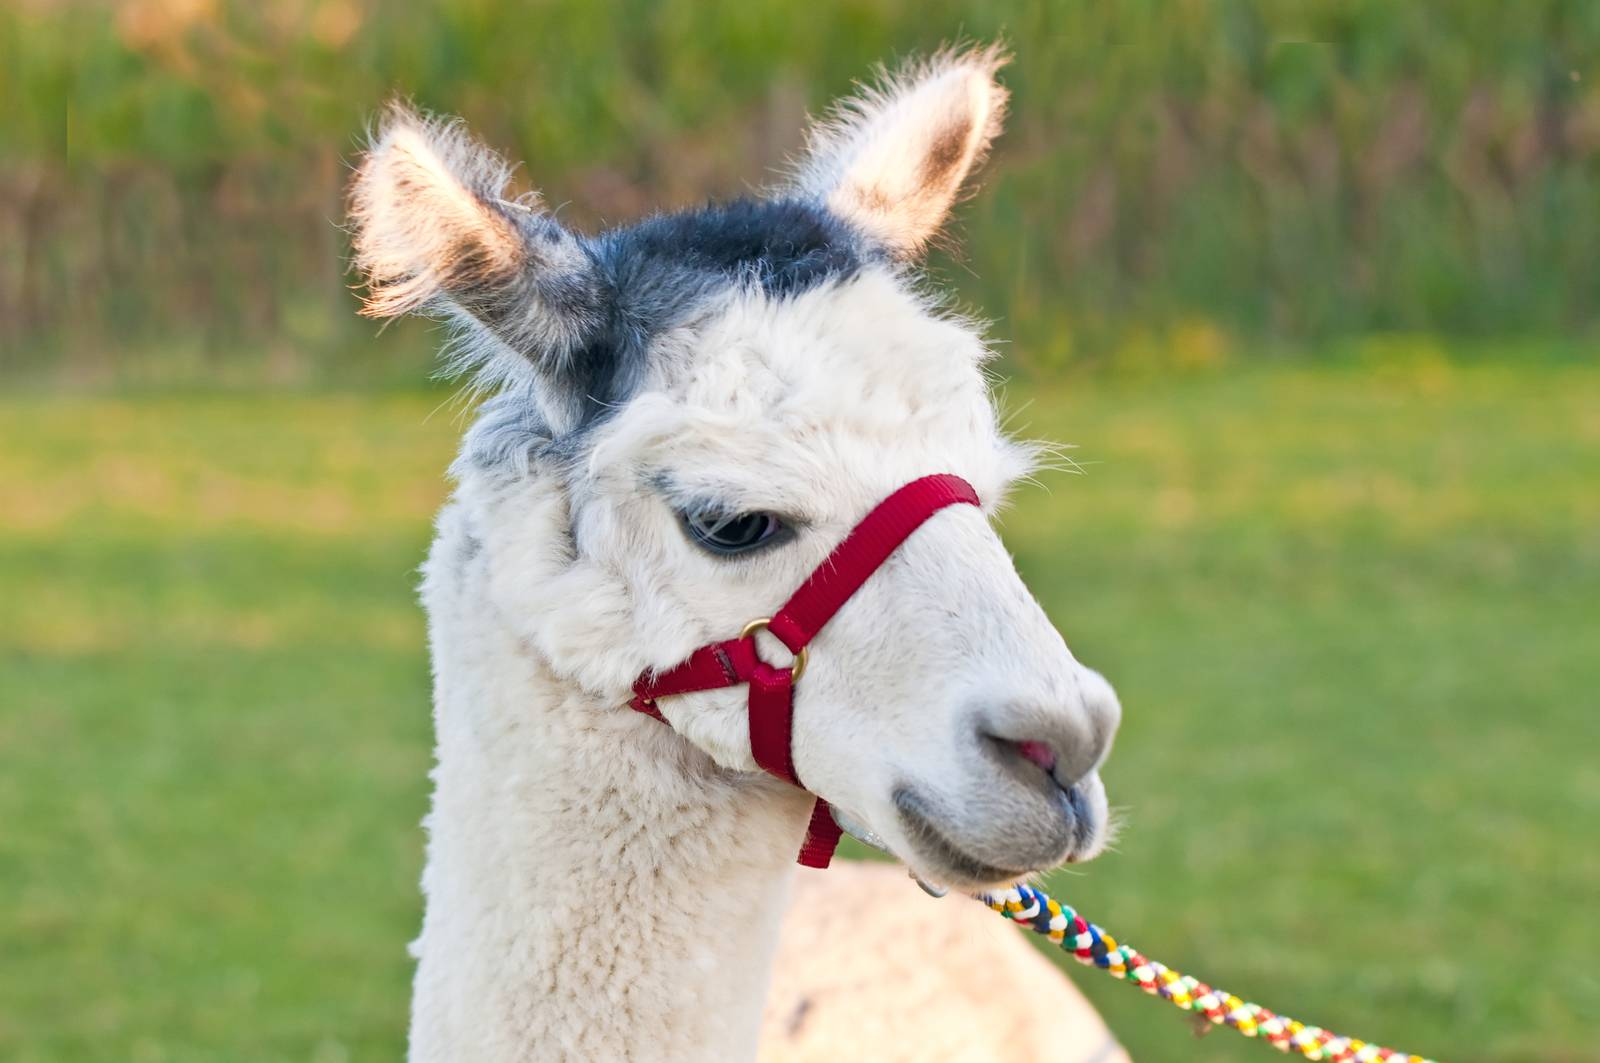 AAT, assisted animal therapy, adorable, alpaca, America, Andes - D34567012